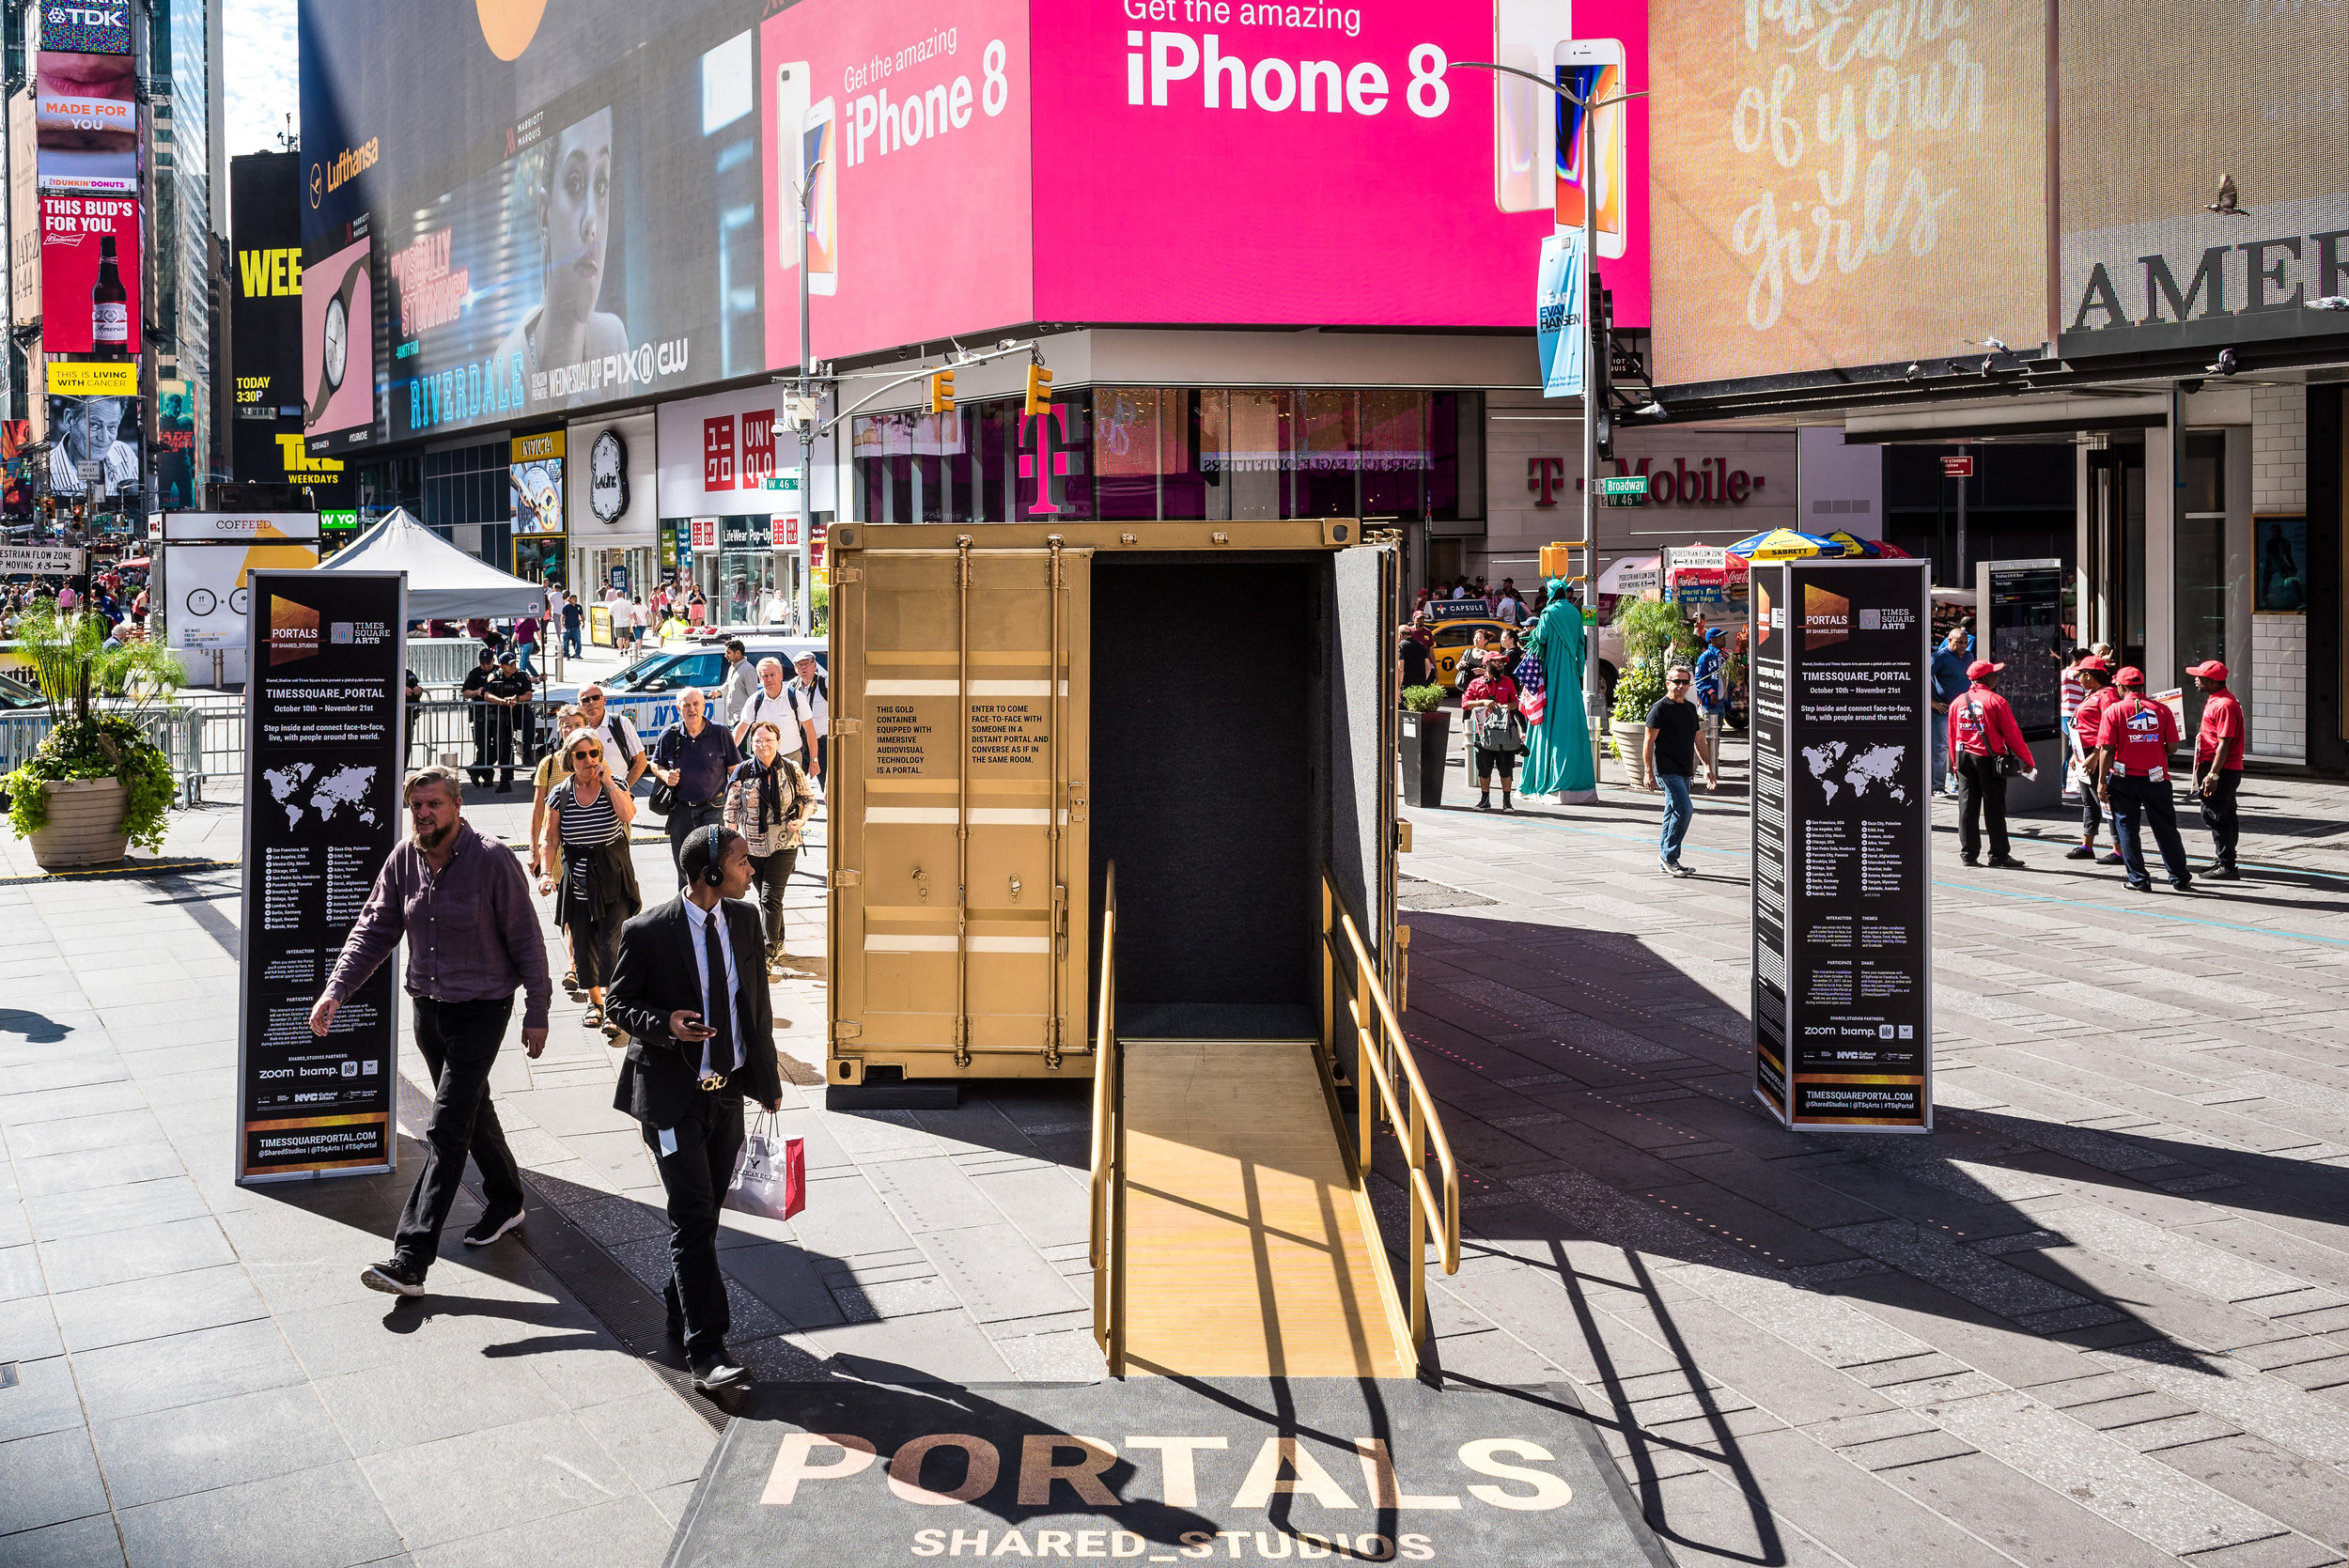 The exterior of the Portal in Times Square.  ©Ian Douglas |  Download JPEG (7.7mb)